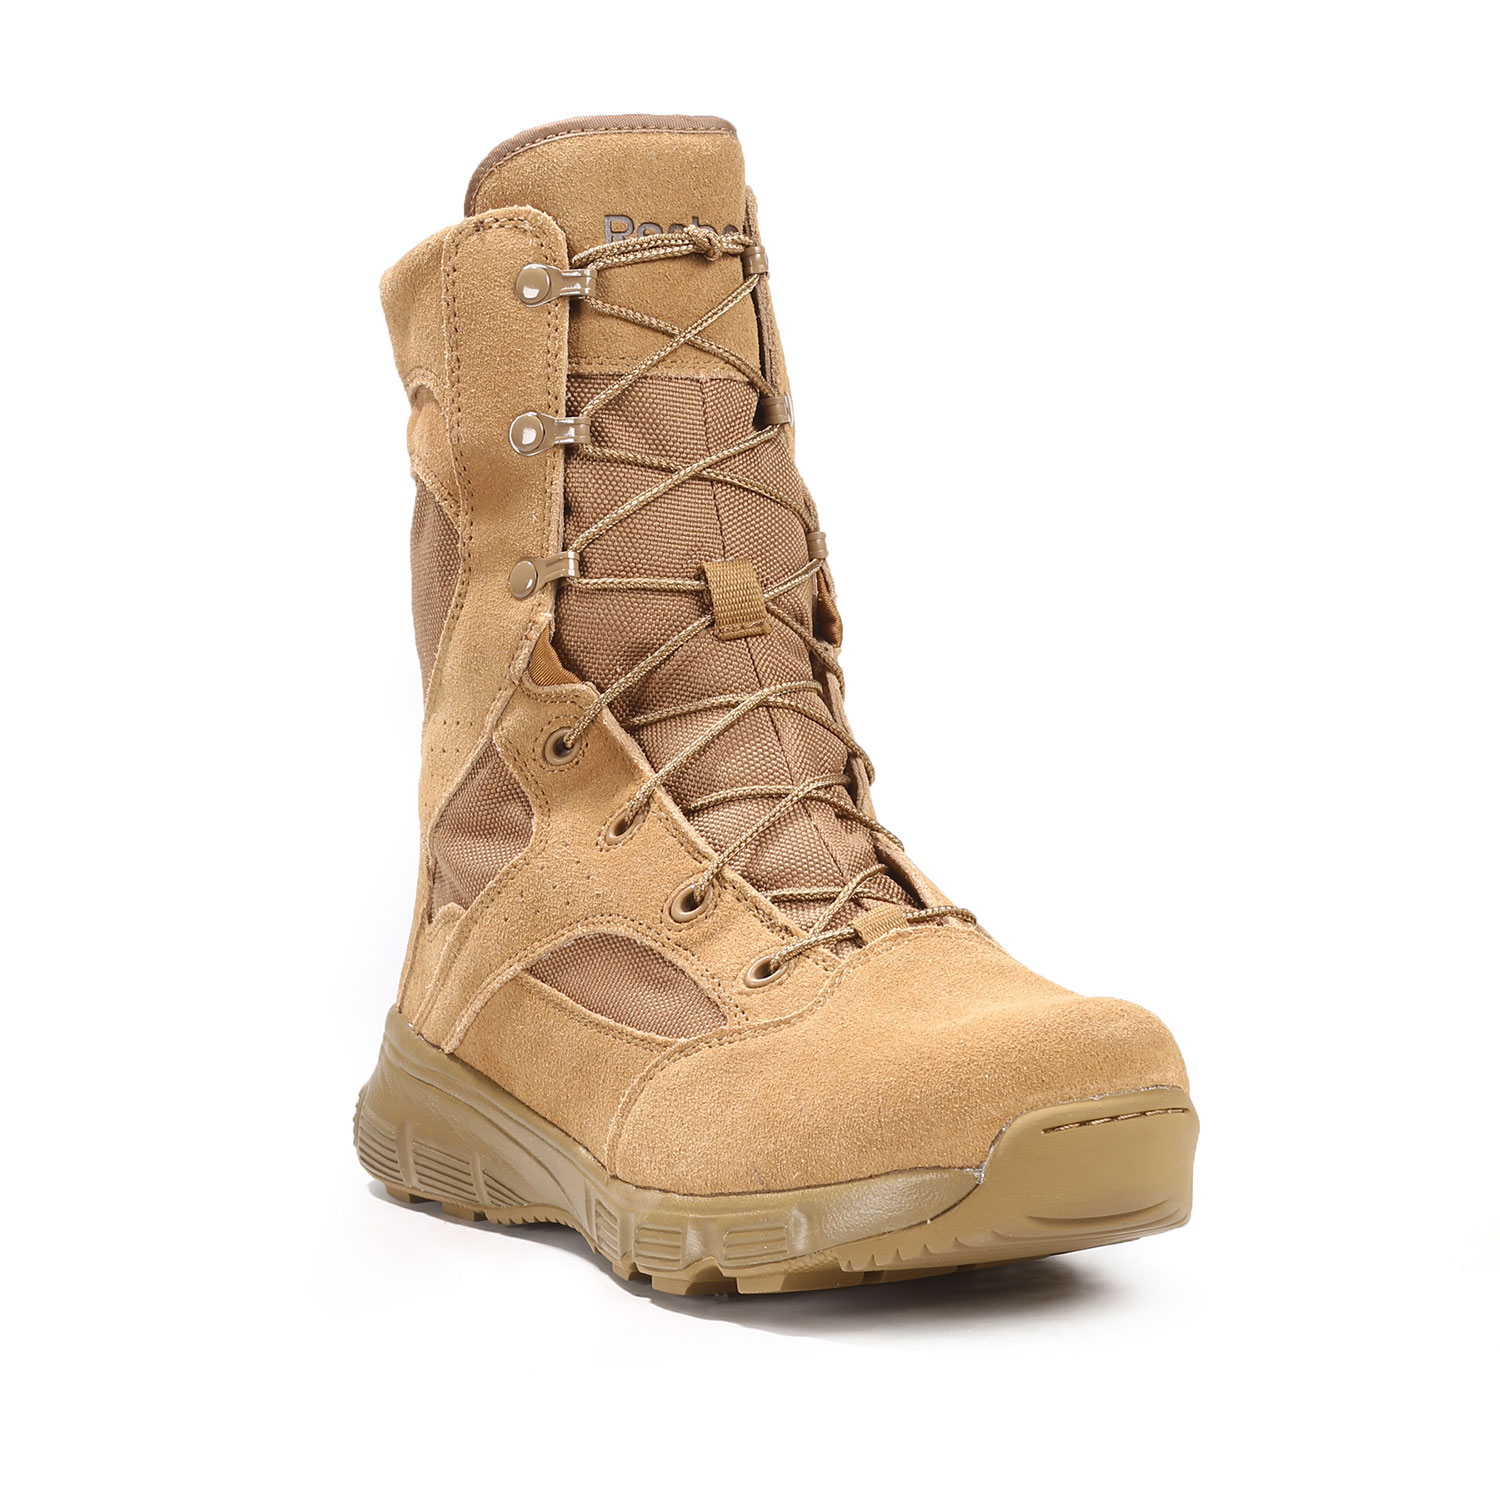 "Reebok Dauntless 8"" Duty Boots"